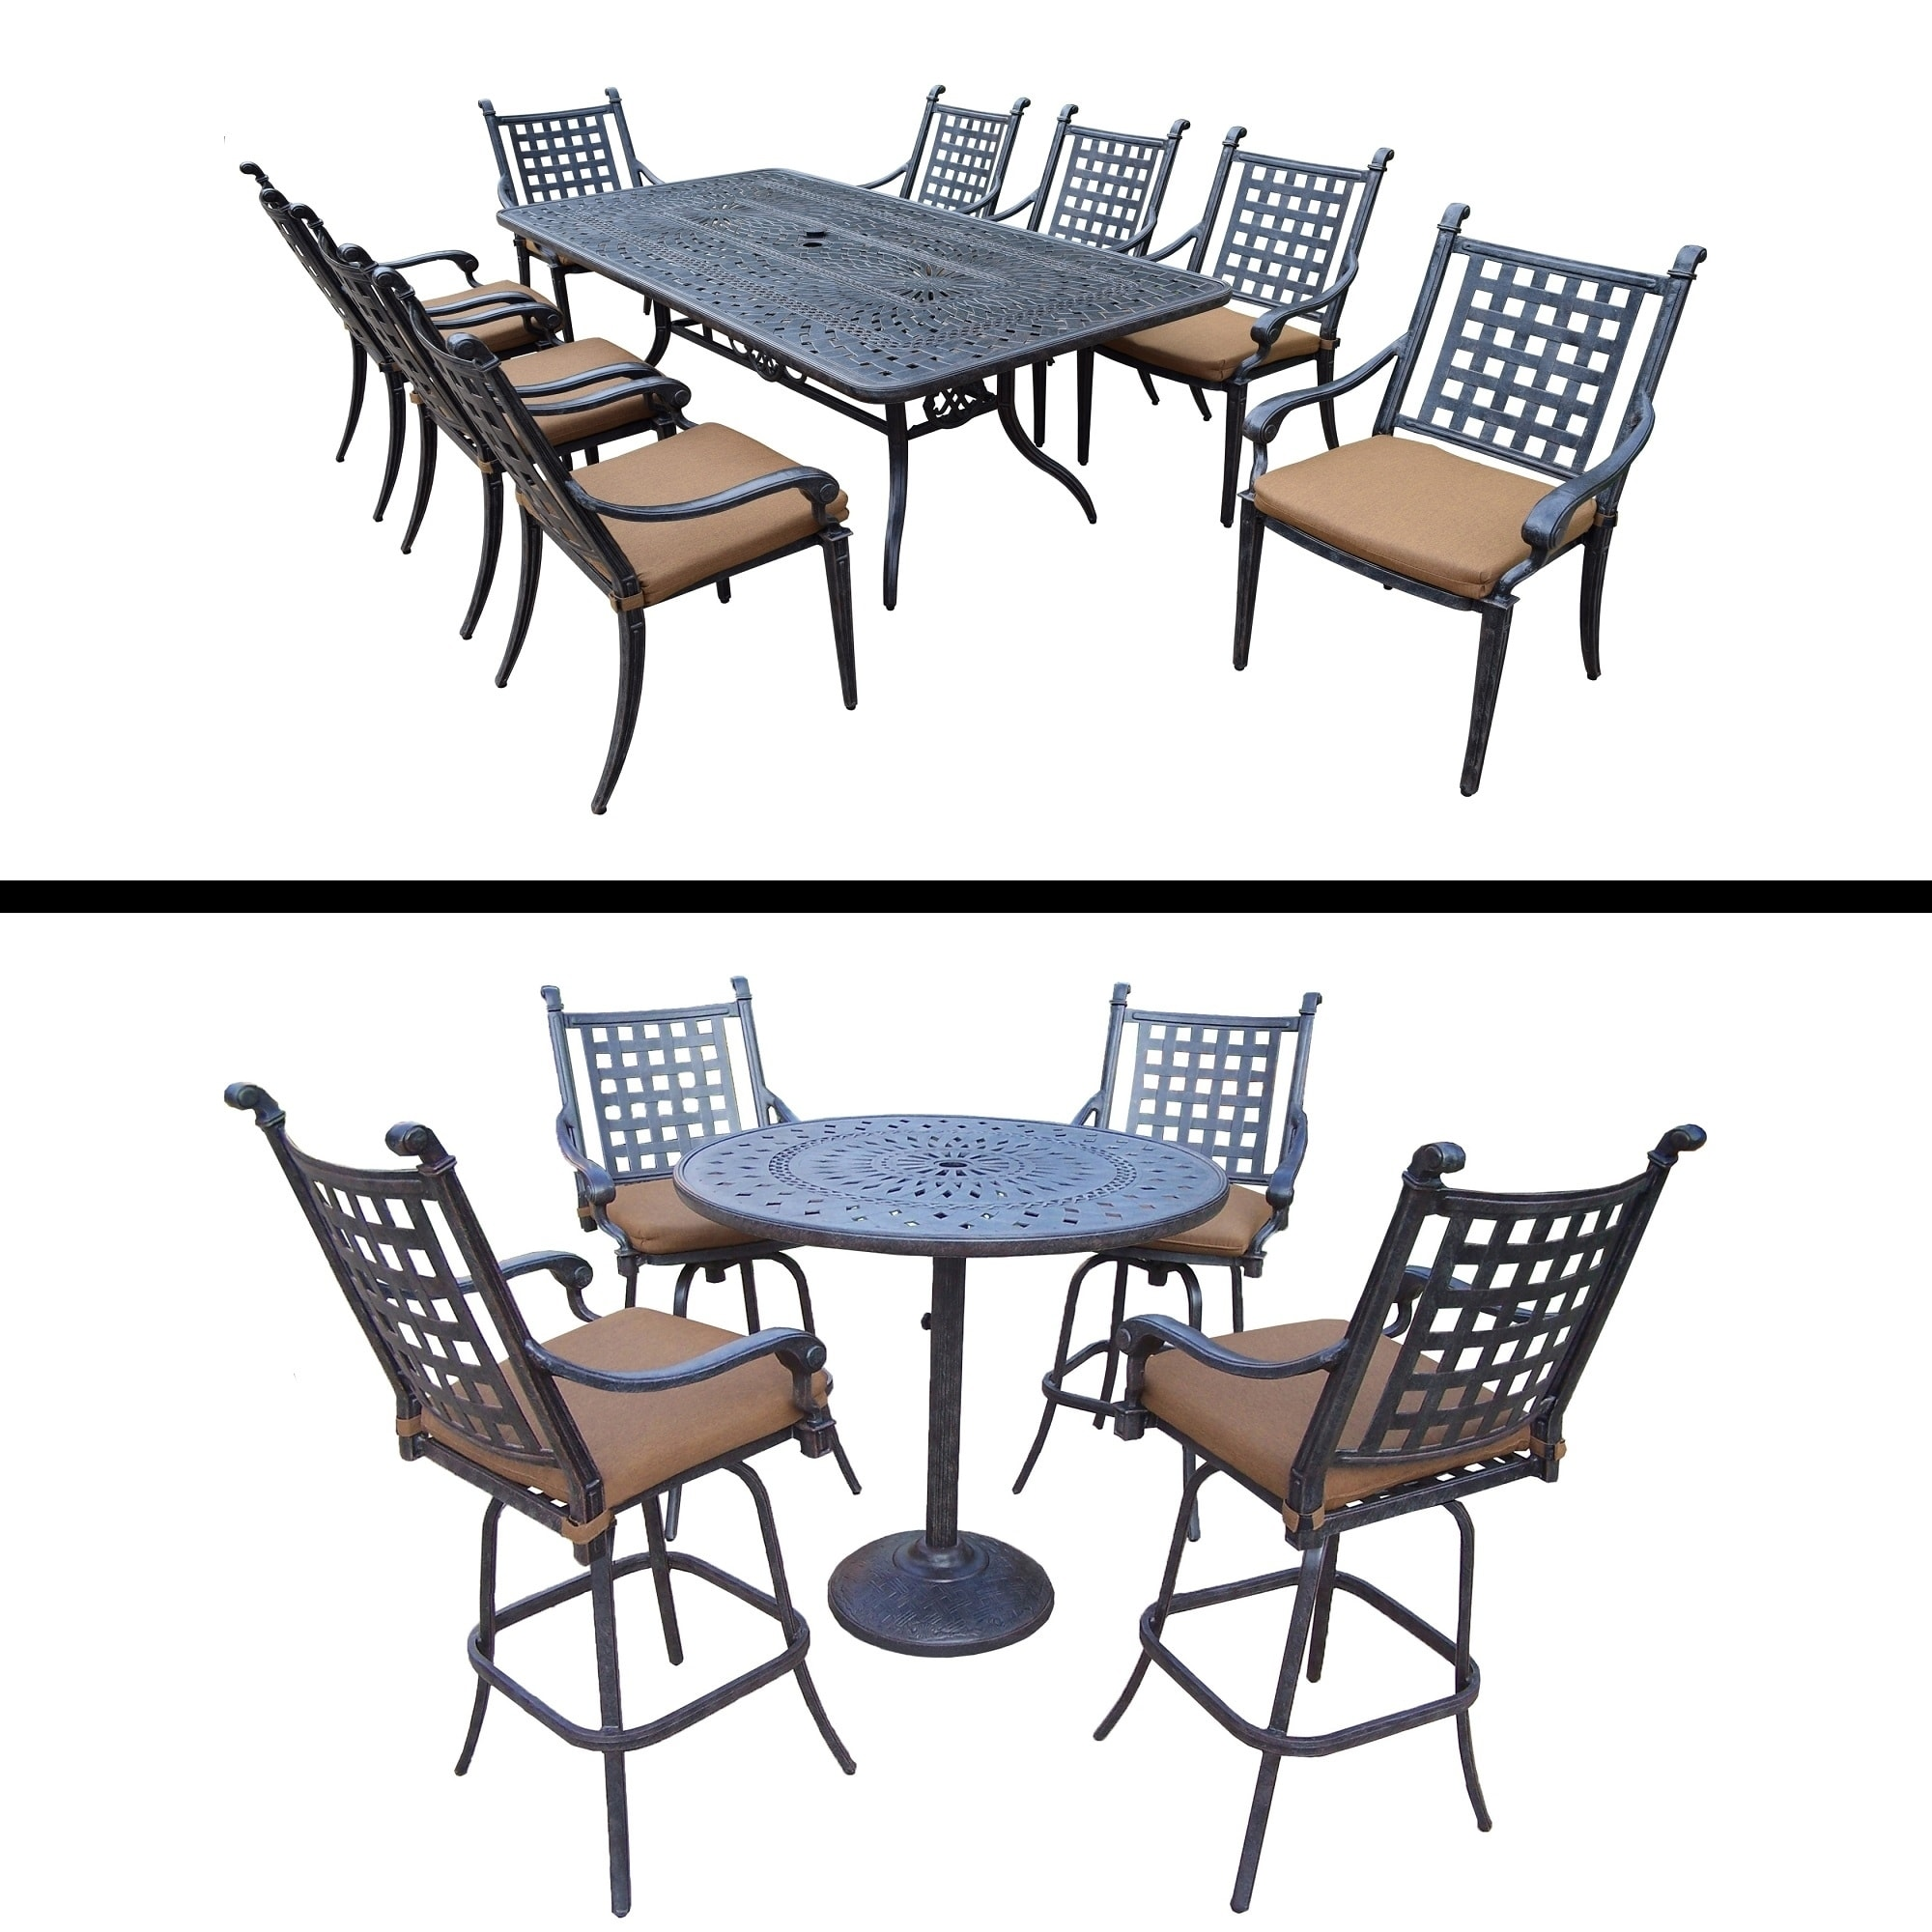 Oakland Living 5 Pc Bar Set, 4 Swivel Bar Stools and 9 Pc Dining Room Set with 8 Chairs by Overstock